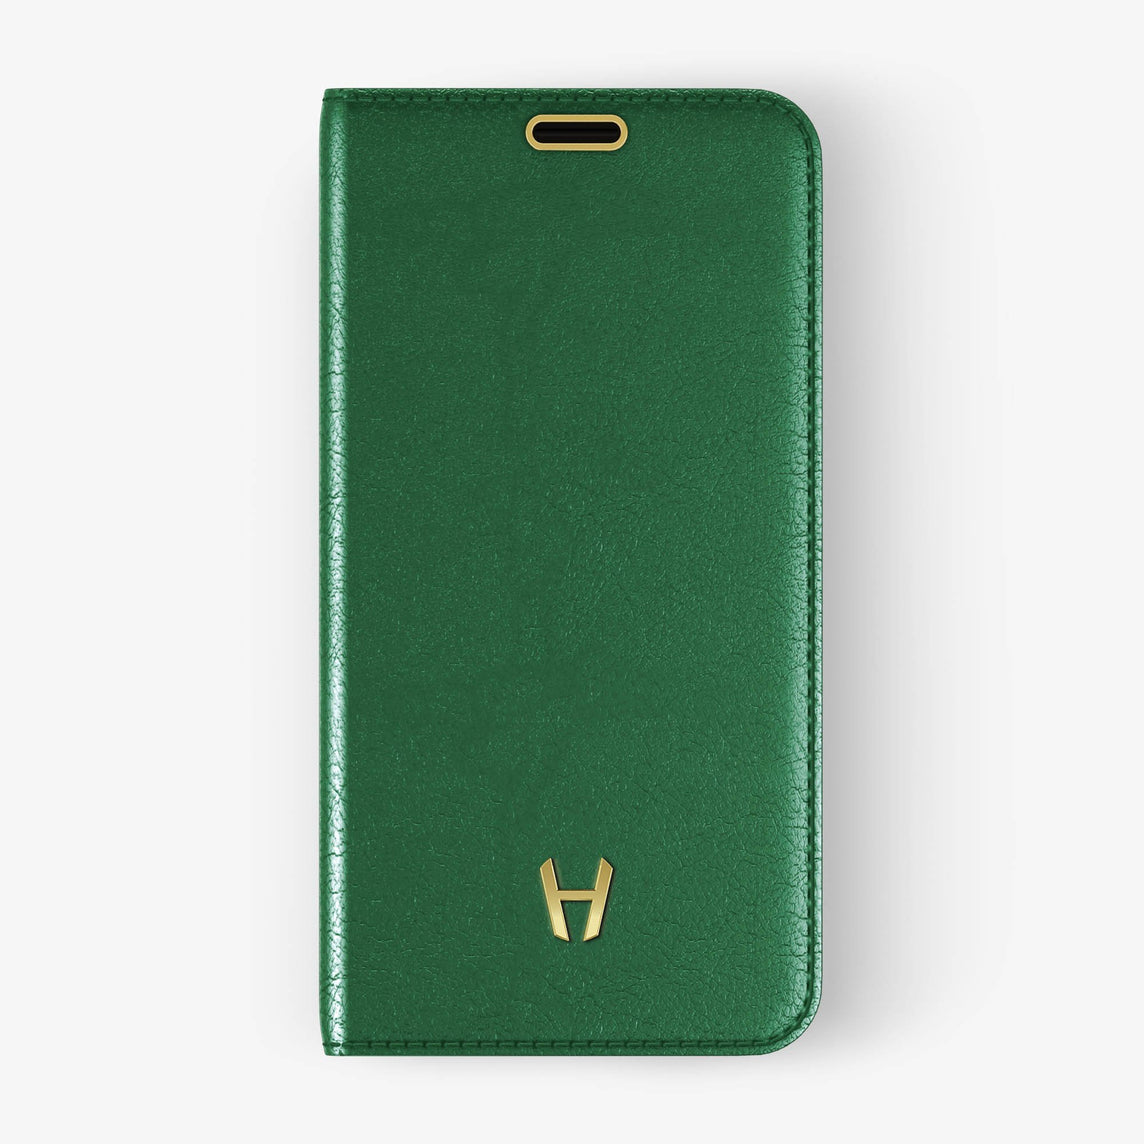 Green Calfskin iPhone Folio Case for iPhone X finishing yellow gold - Hadoro Luxury Cases - img1